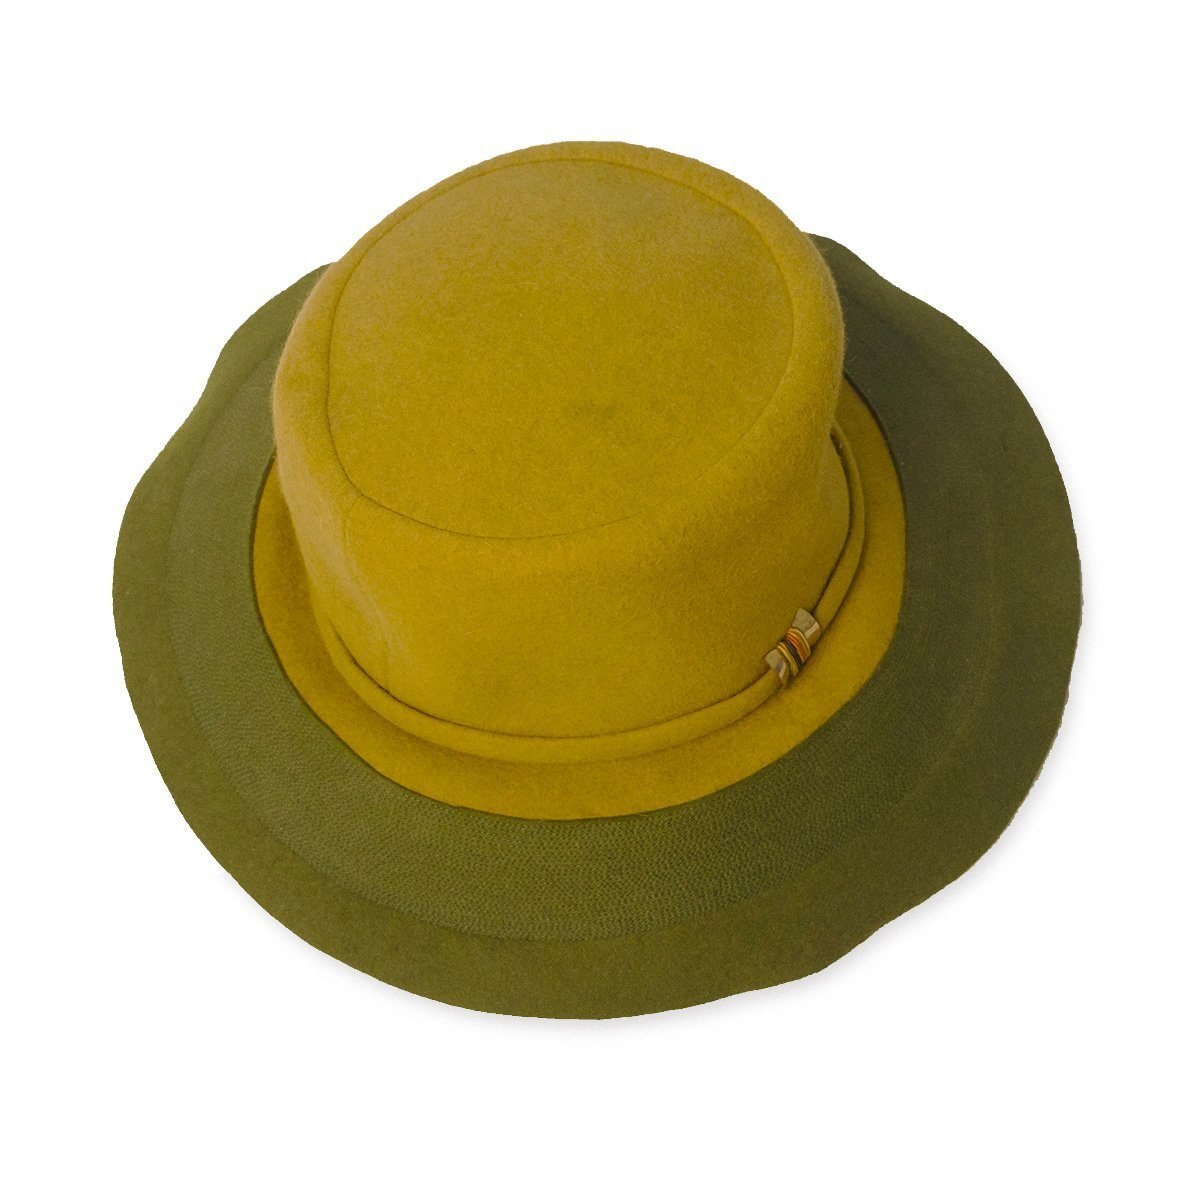 Vintage 60s Mod Wide Brim Hat by Leslie James, Green & Yellow Wool Felt